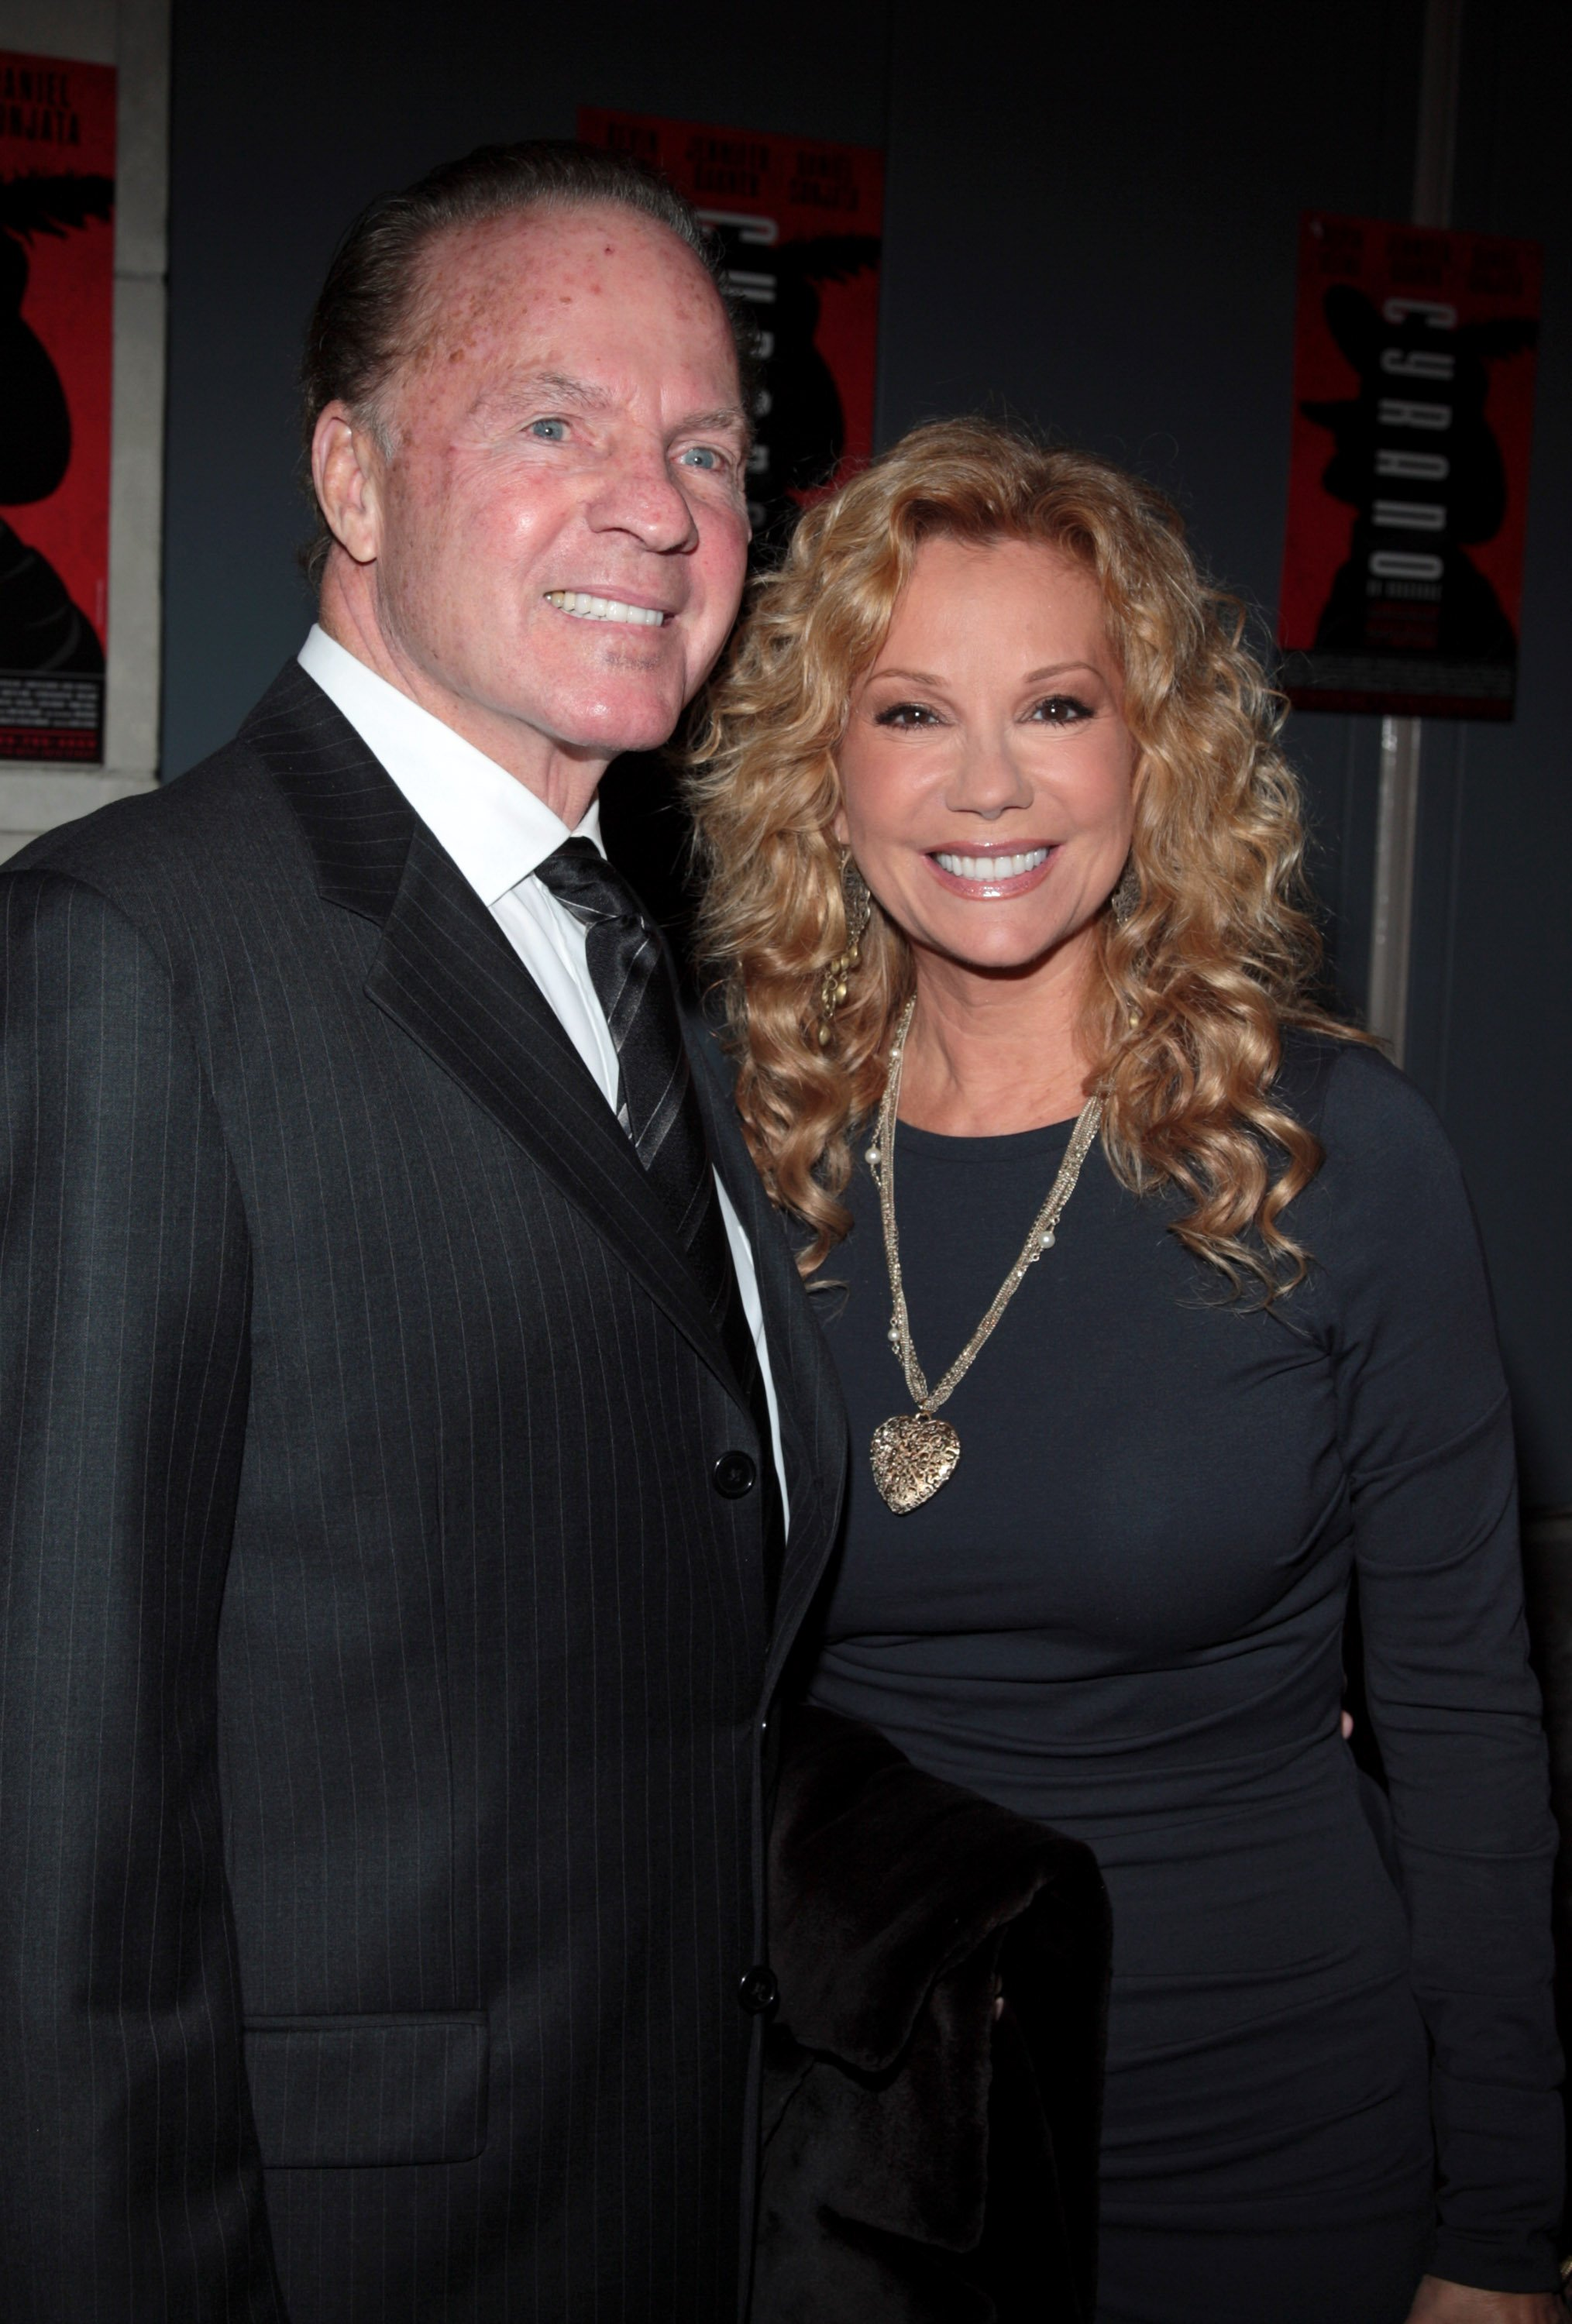 Kathie Lee Gifford and husband Frank Gifford | Photo: Getty Images